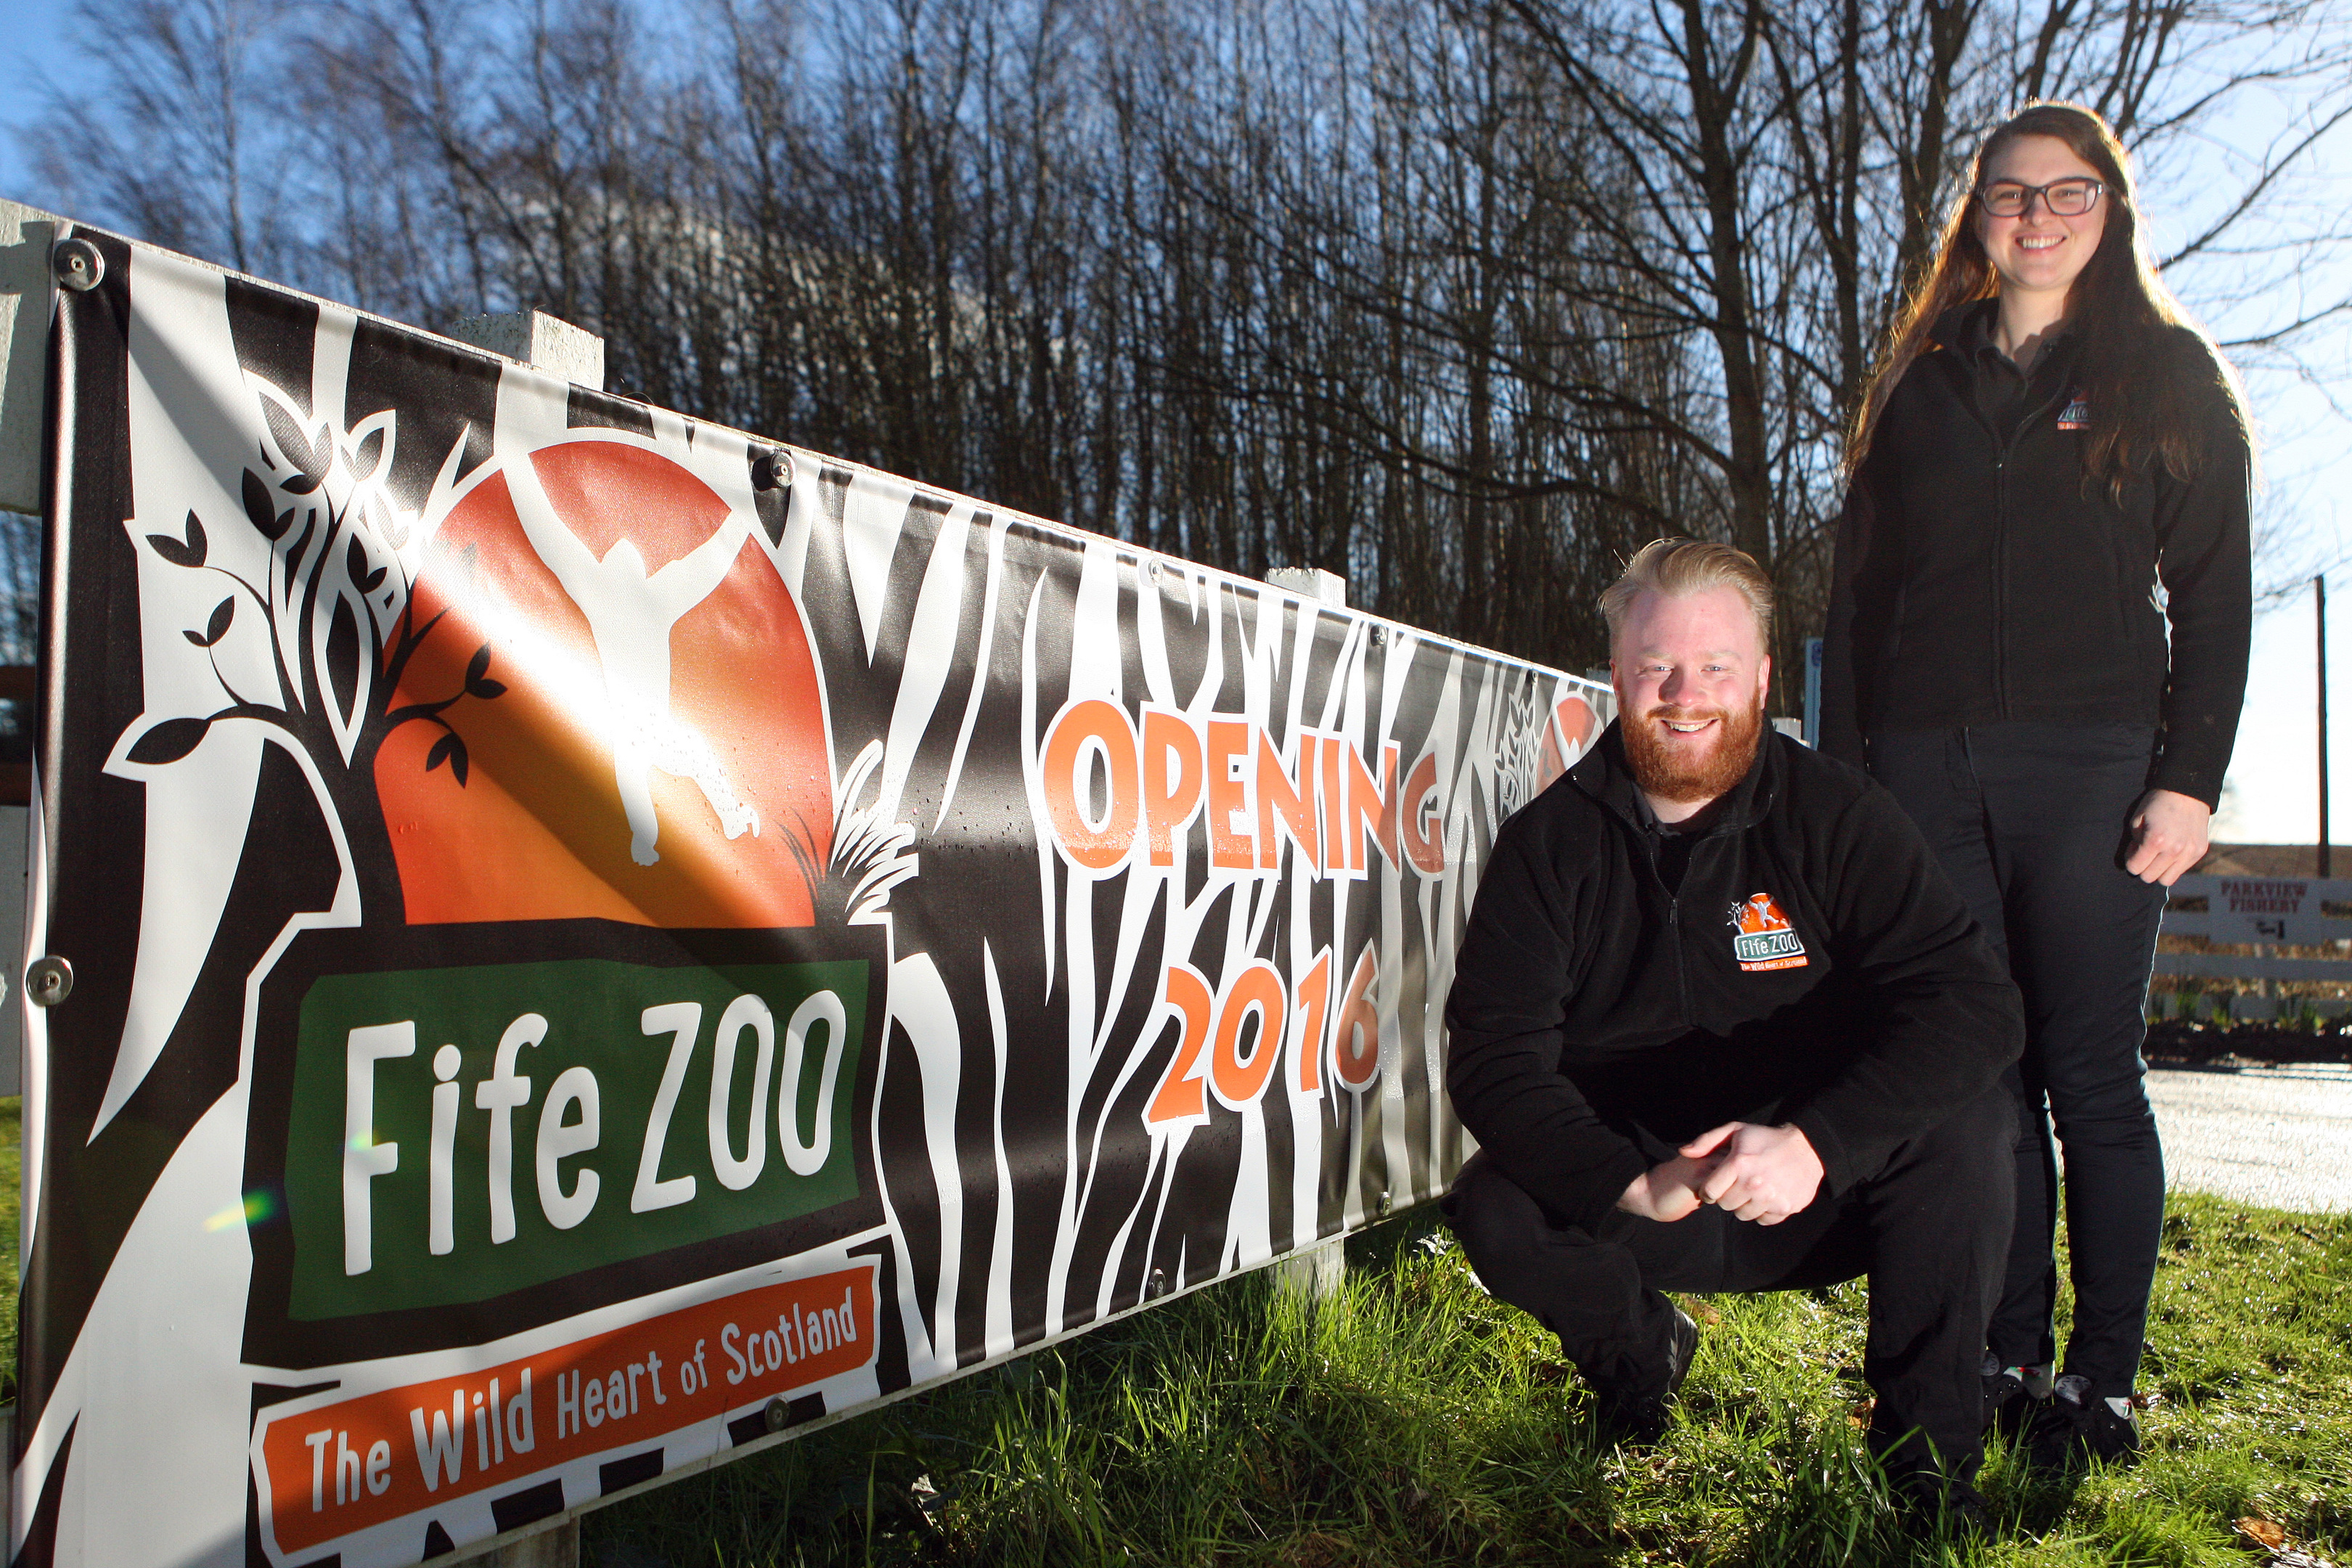 Briony Taylor and Michael Knight, owners of Fife Zoo